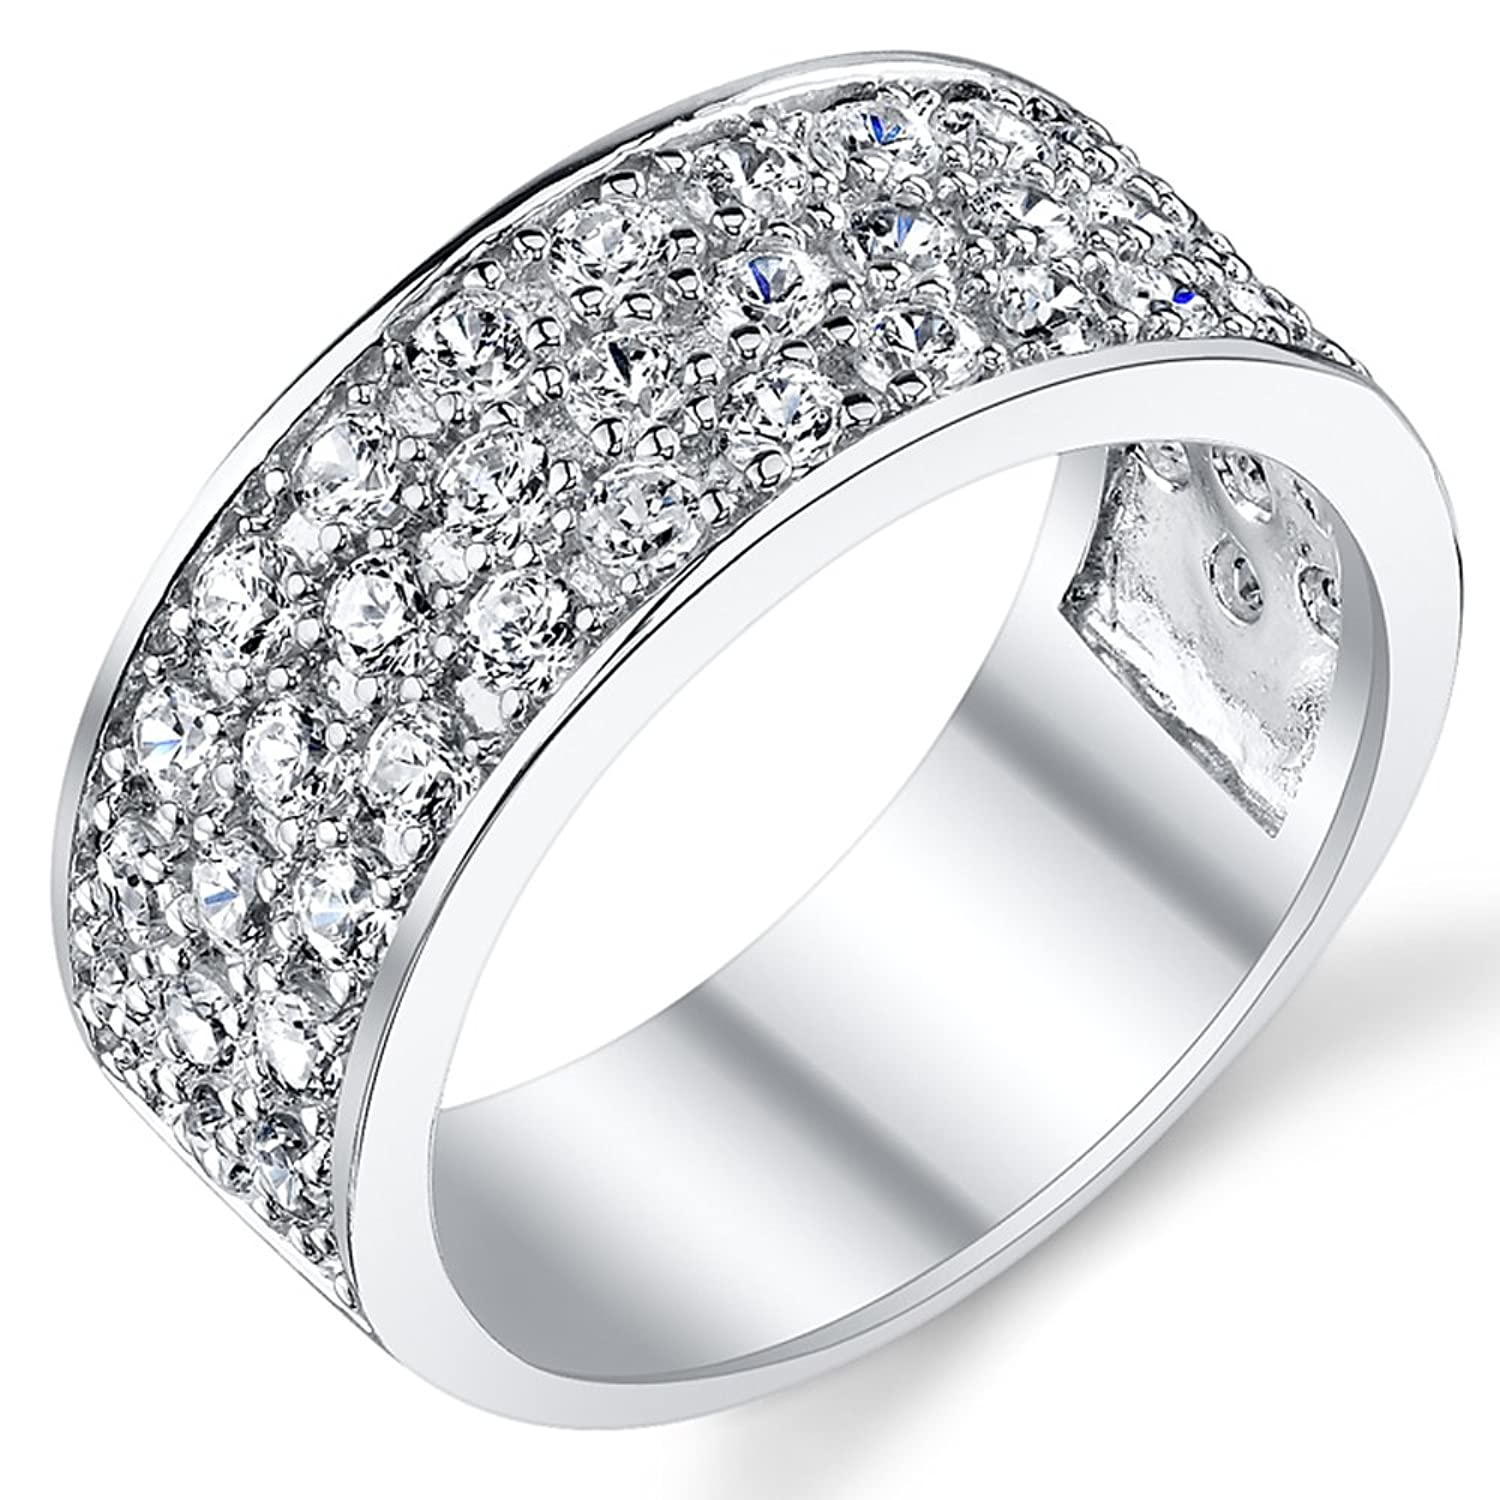 in banners set jewellery time diamond an solitaire their and versatility the array bands when co eshop with of complete to pairing engagement beautifully wedding are rings unmatched comes gabriel bridal